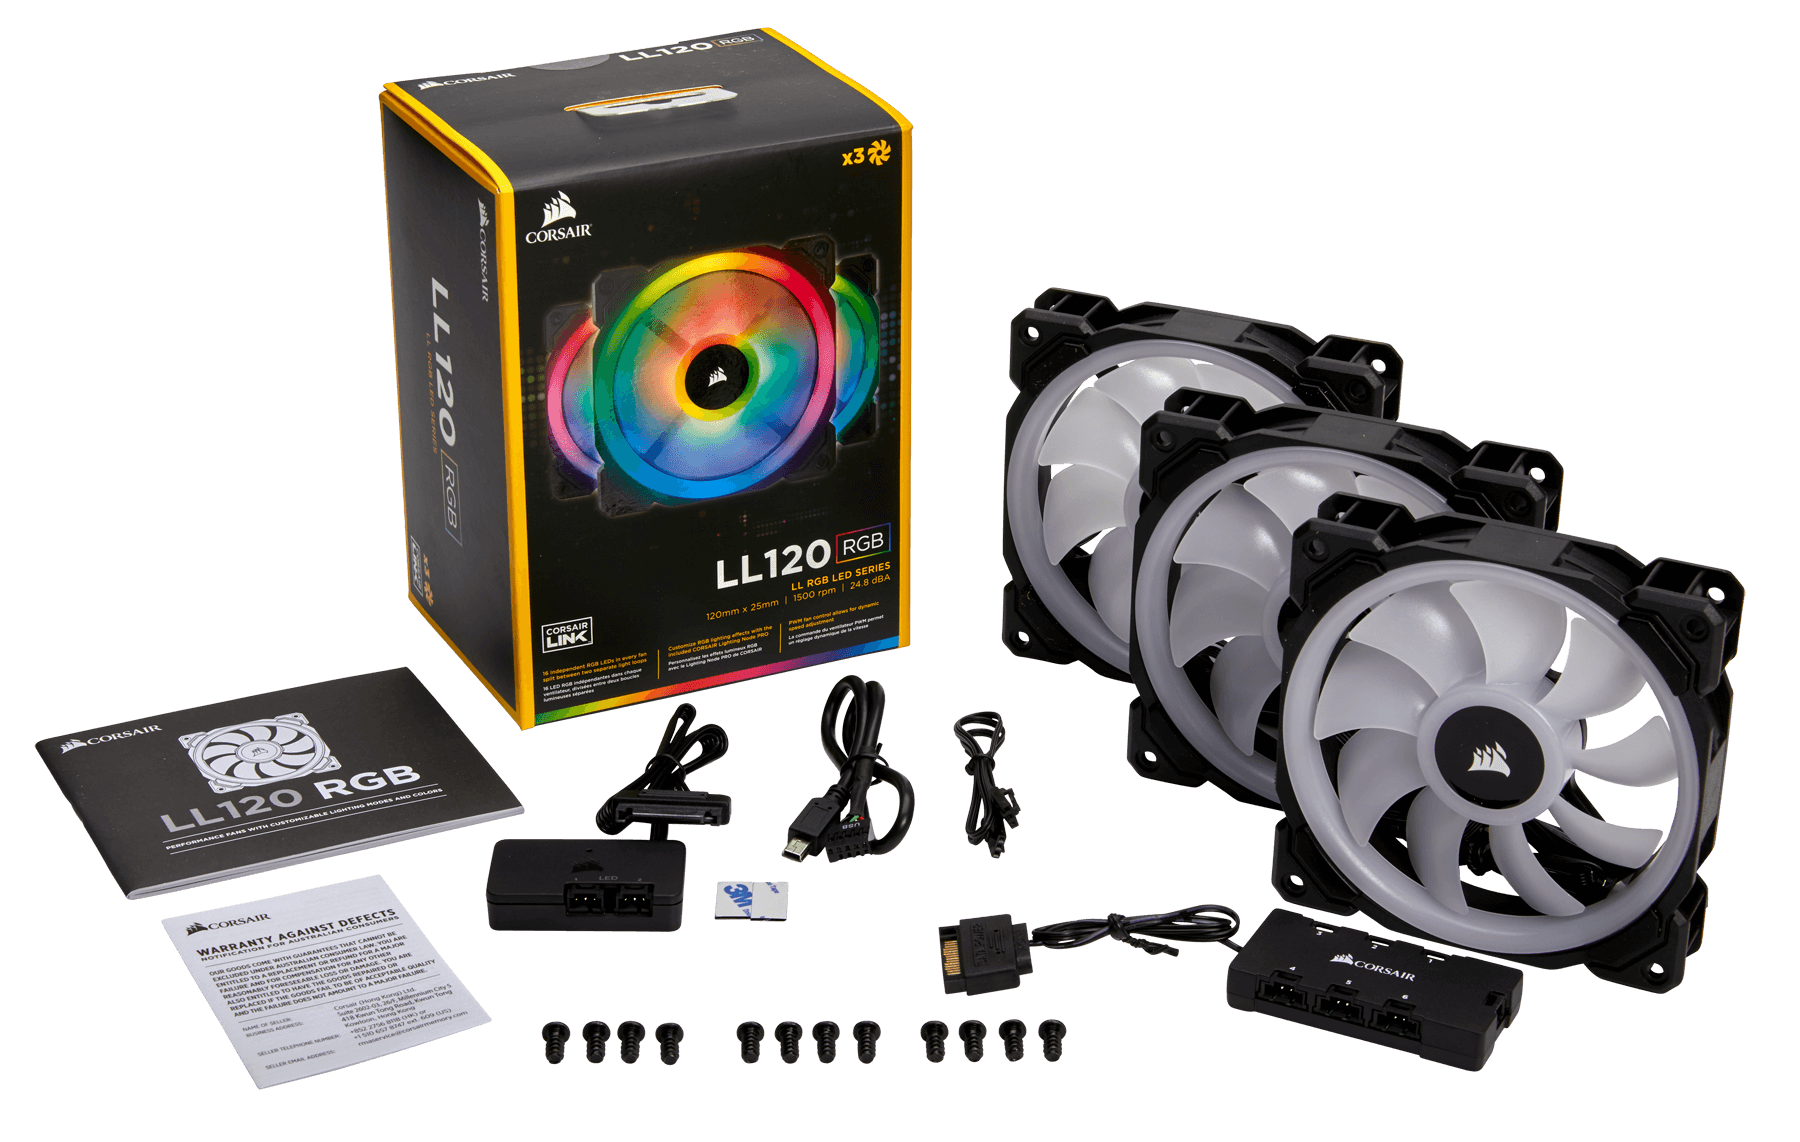 Fan Corsair LL120 RGB 120mm Dual Light Loop RGB LED PWM Fan (Gồm 3 Fan với Lighting Node PRO) (CO-9050072-WW)